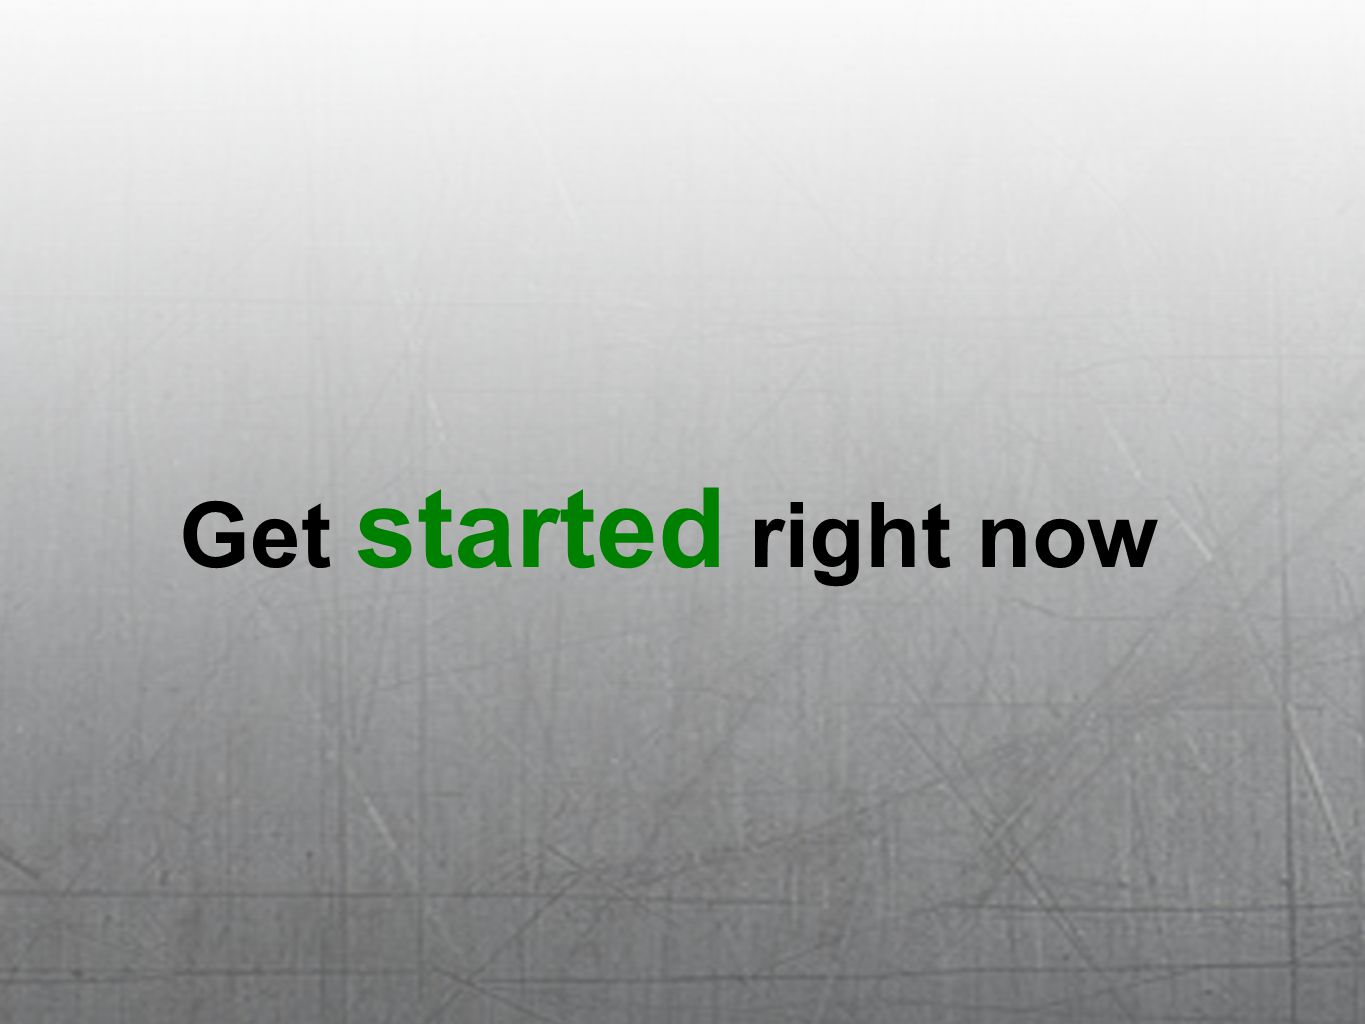 Get started right now